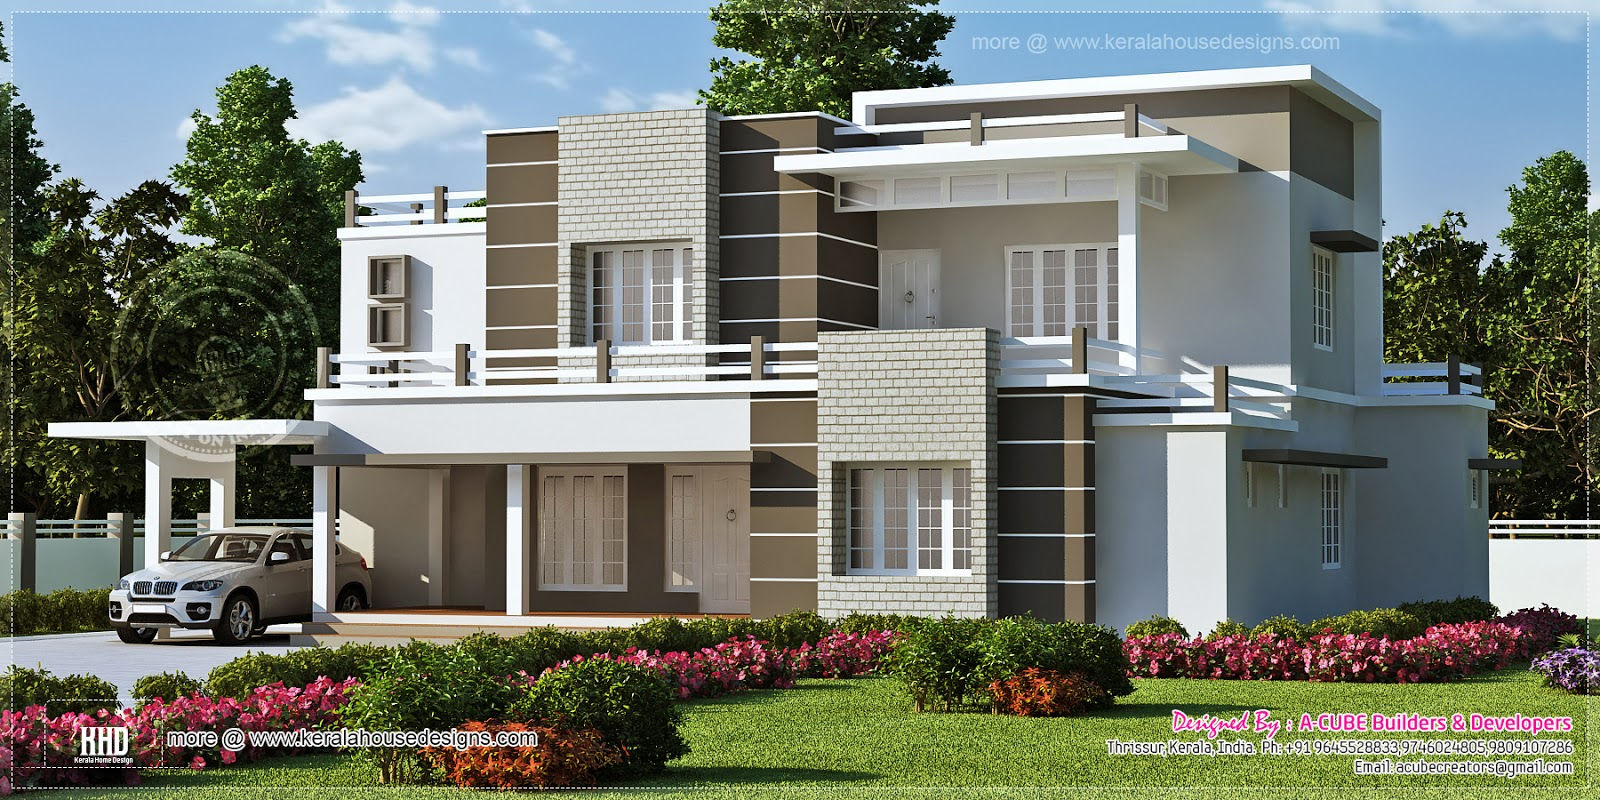 Beautiful sober color contemporary home design kerala for Post modern home design